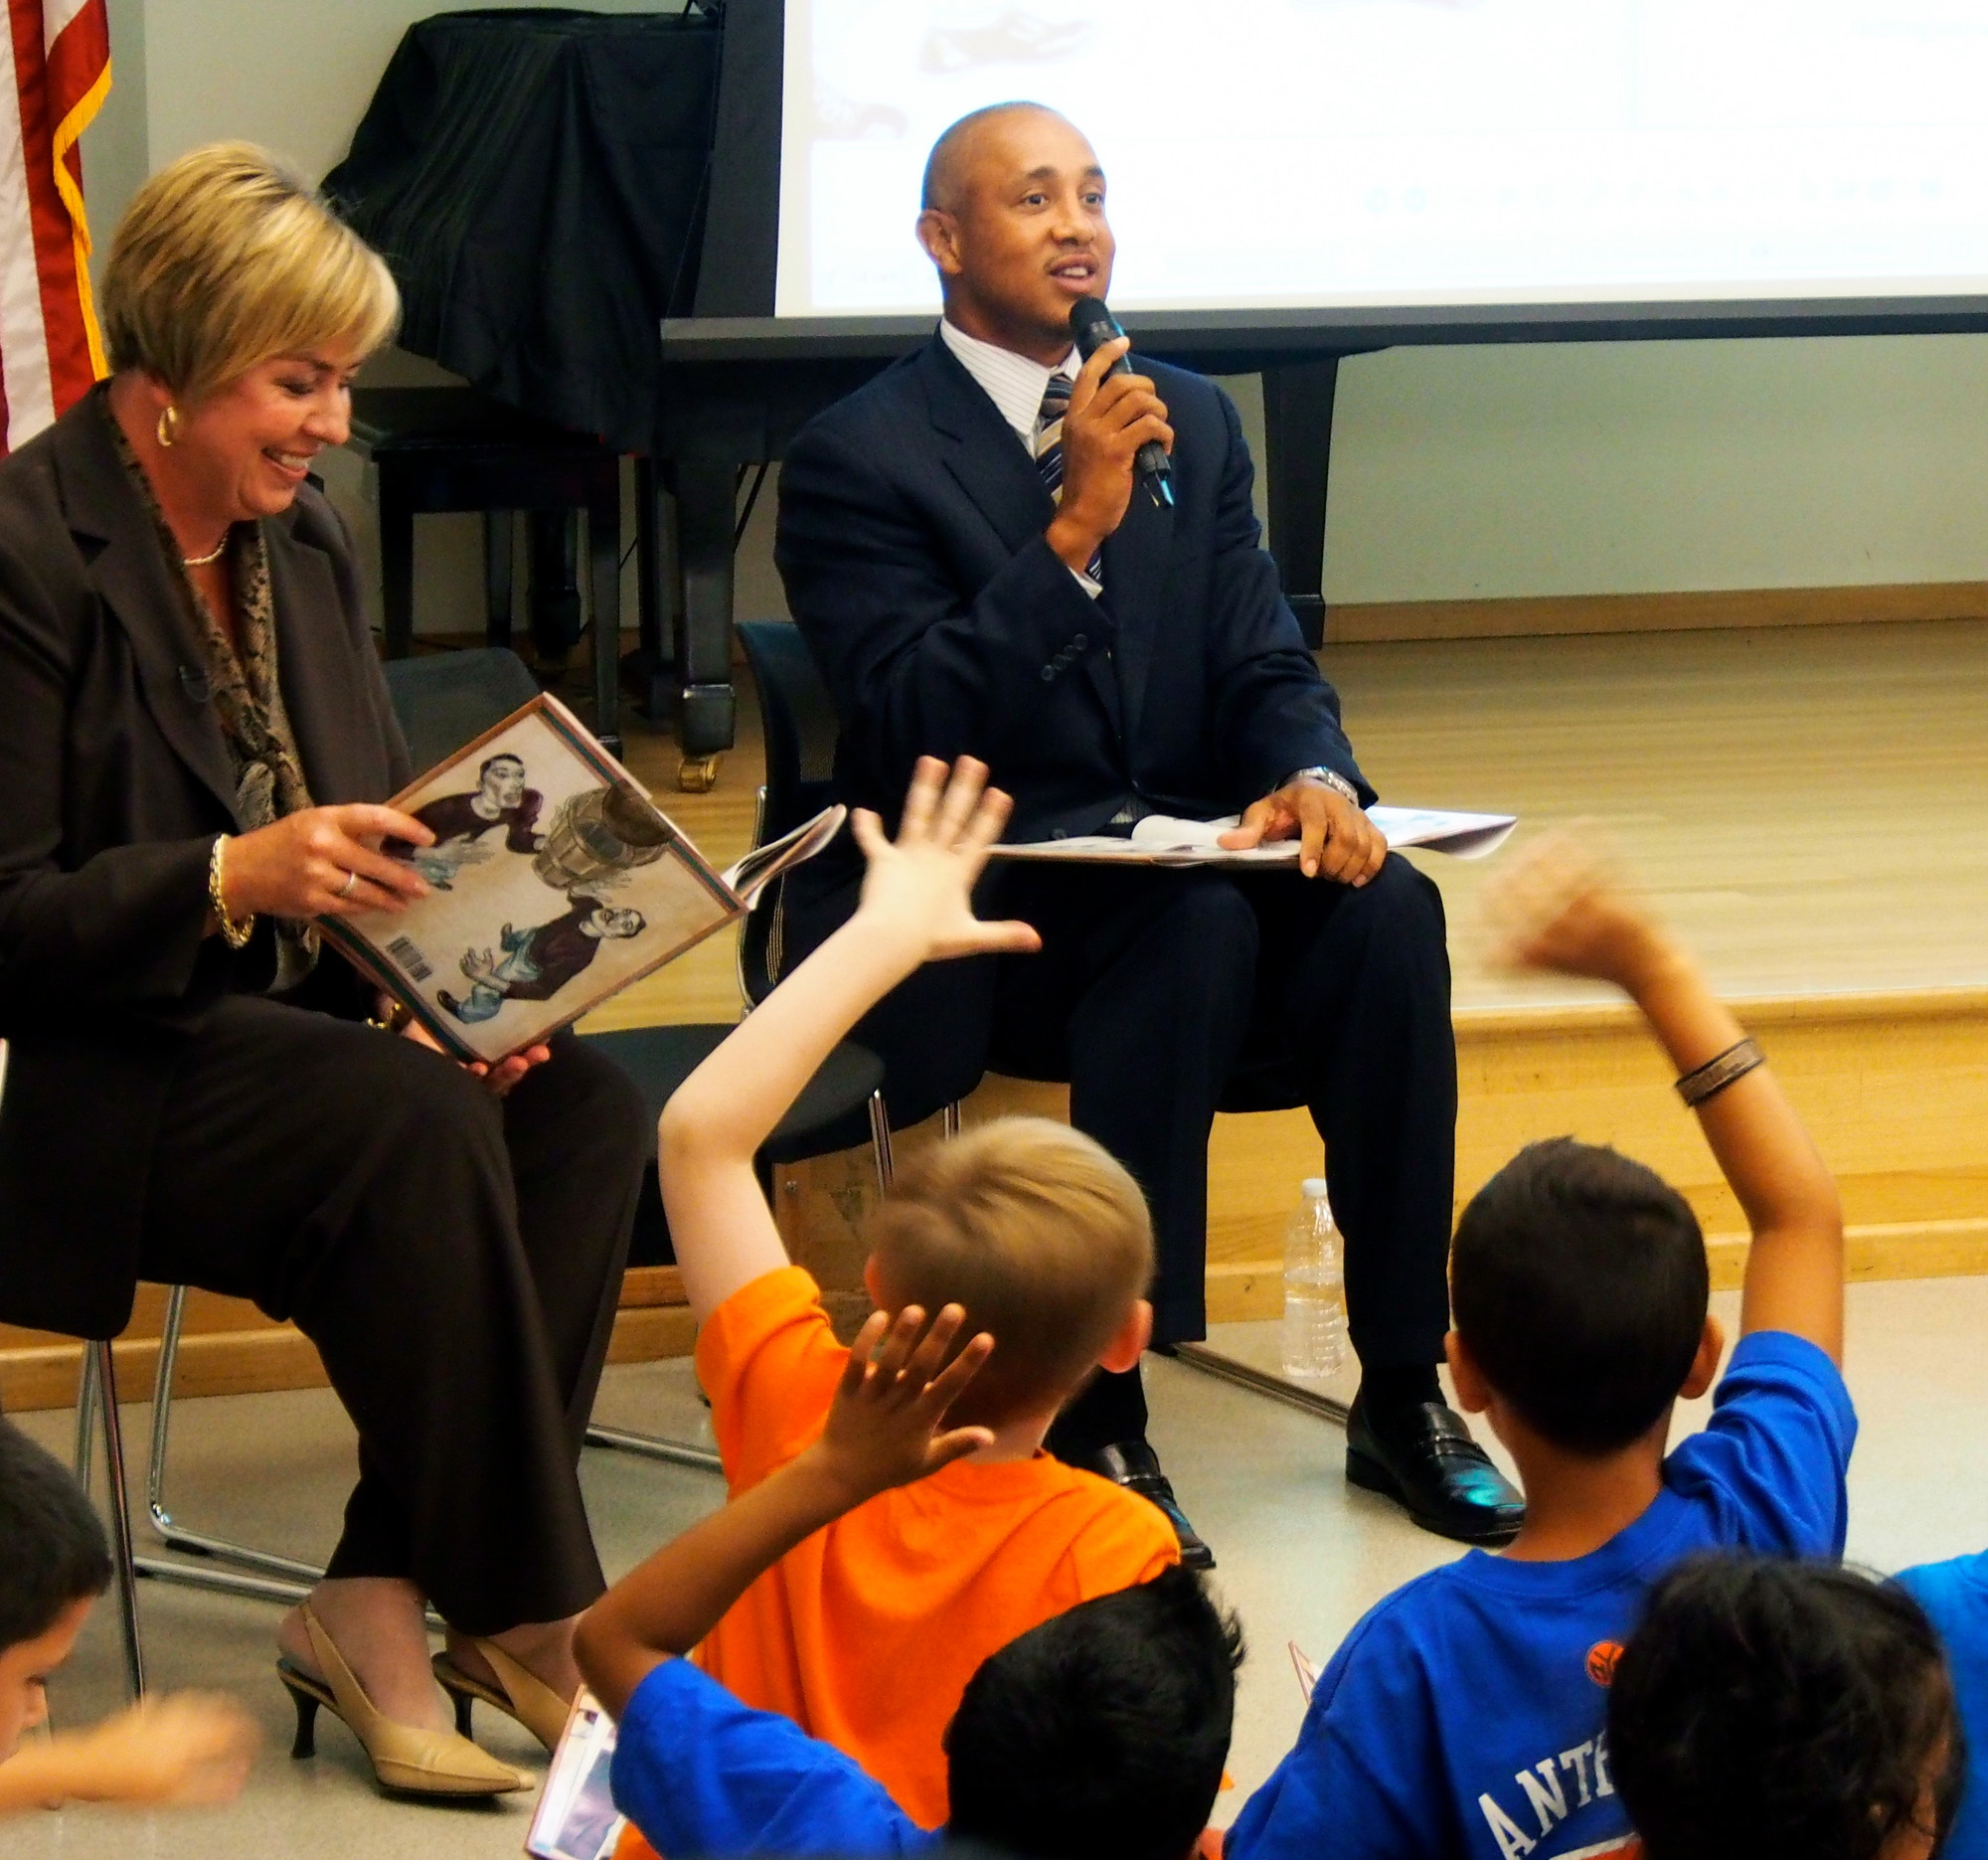 There was no shortage of volunteers willing to read alongside John Starks and Kate Murray.